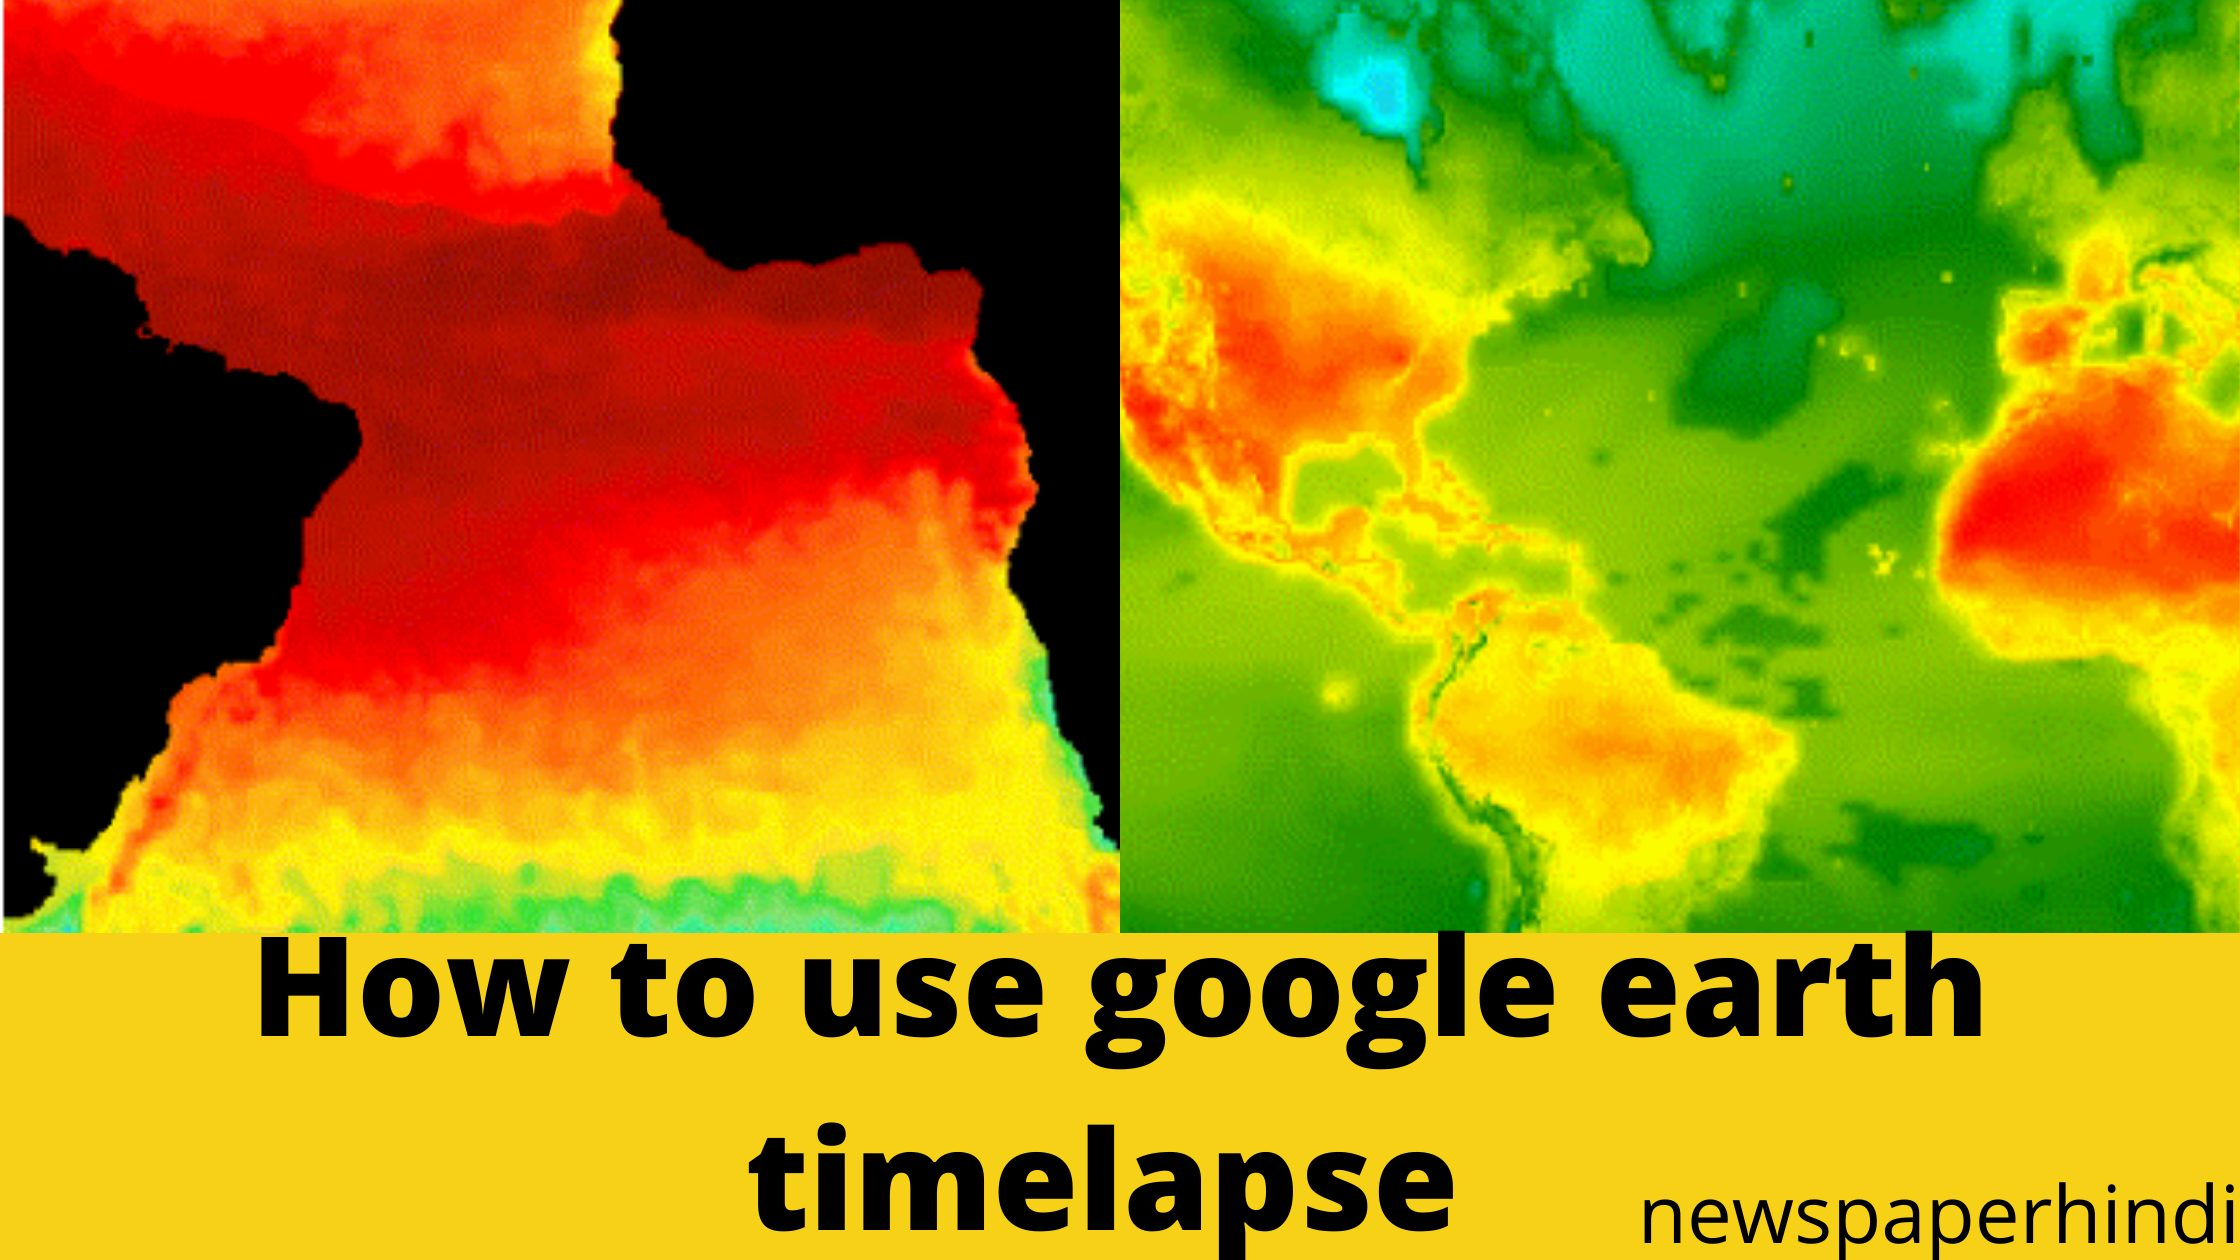 How to use google earth timelapse (with images)